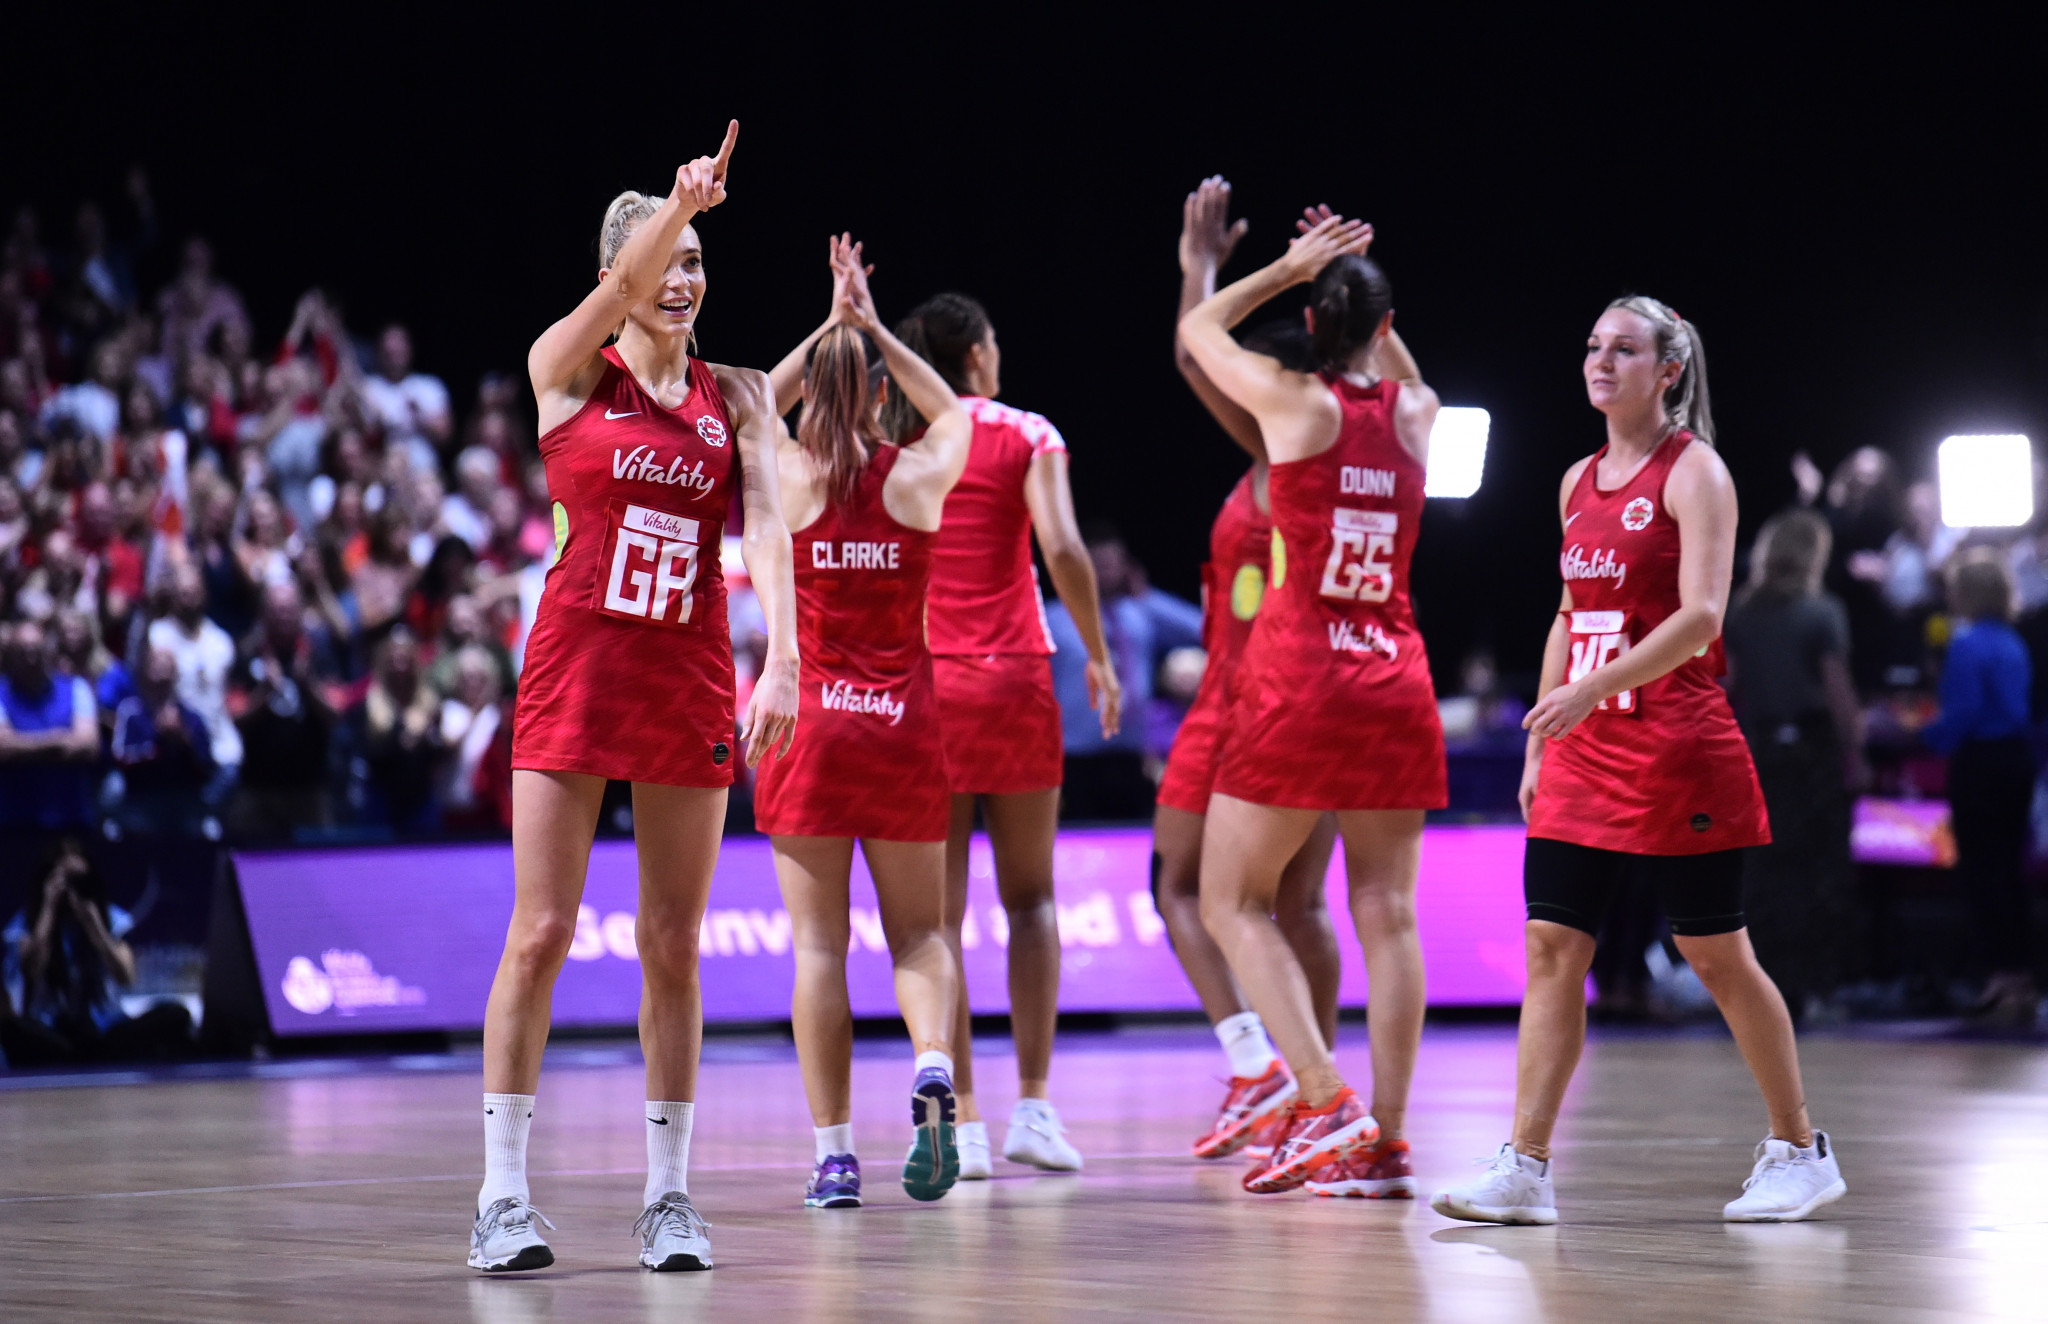 Hosts England and South Africa qualify for Netball World Cup semi-finals